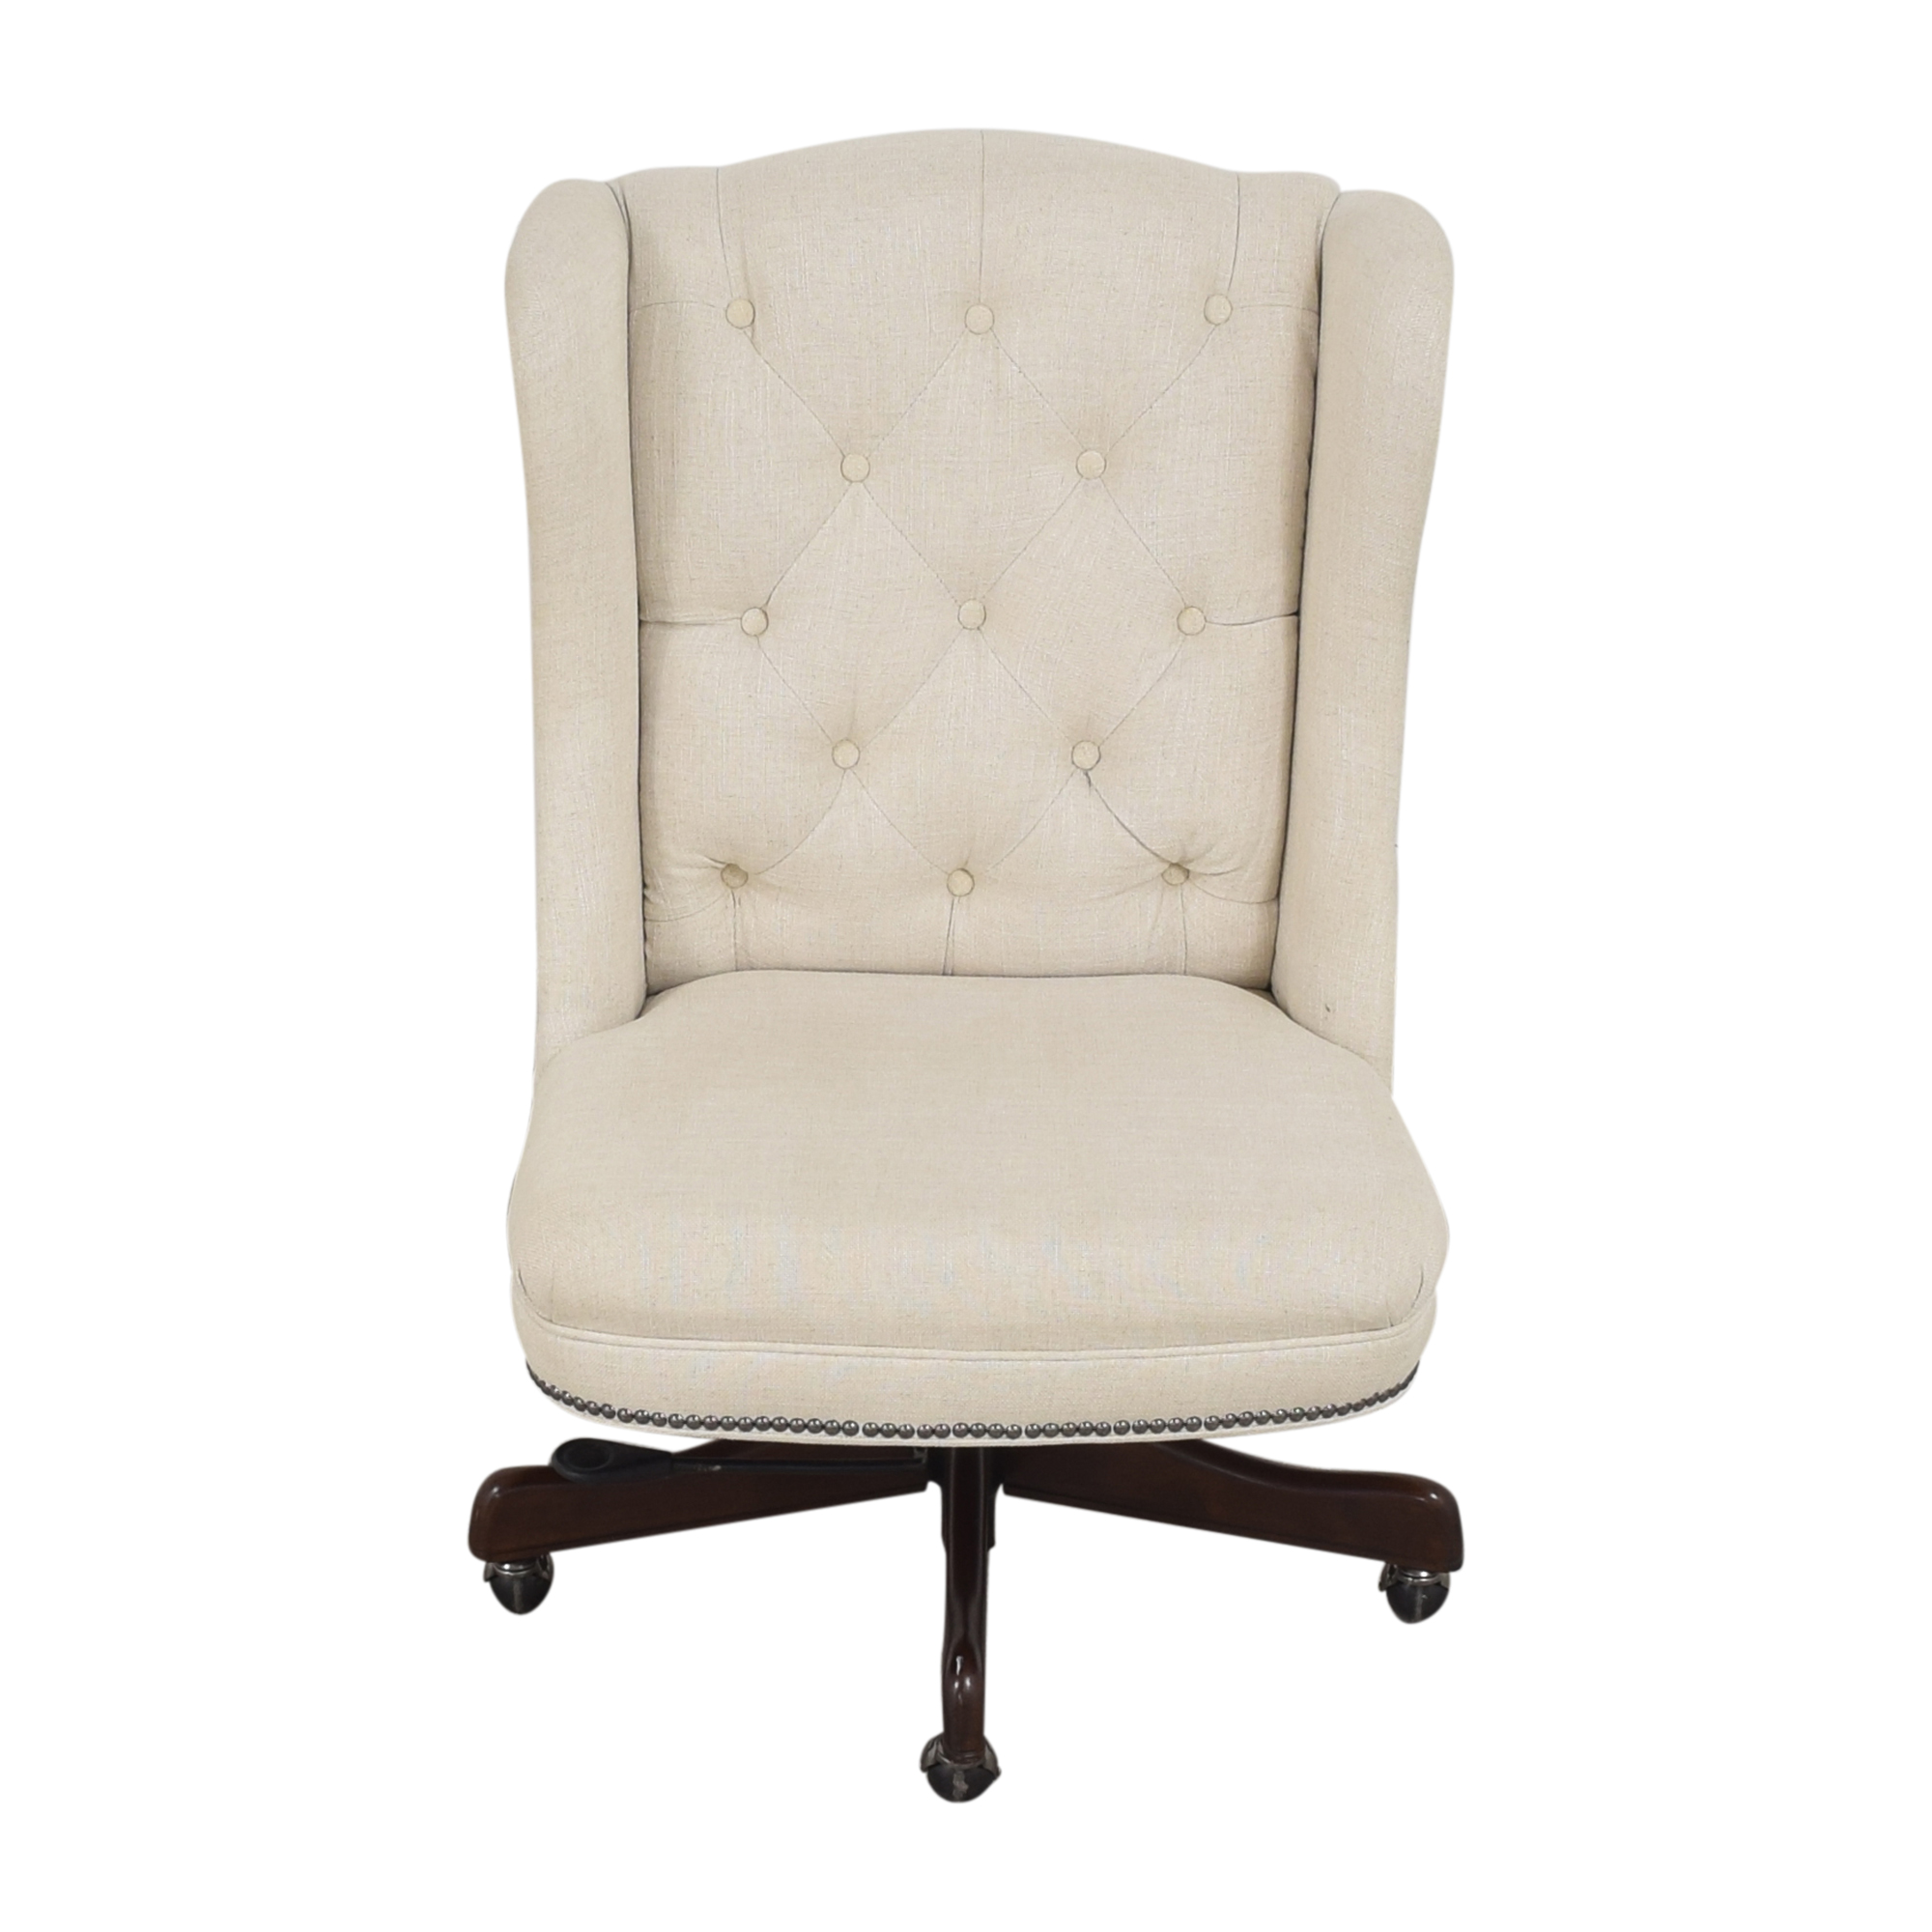 buy Hooker Furniture Hooker Andover Executive Office Chair online